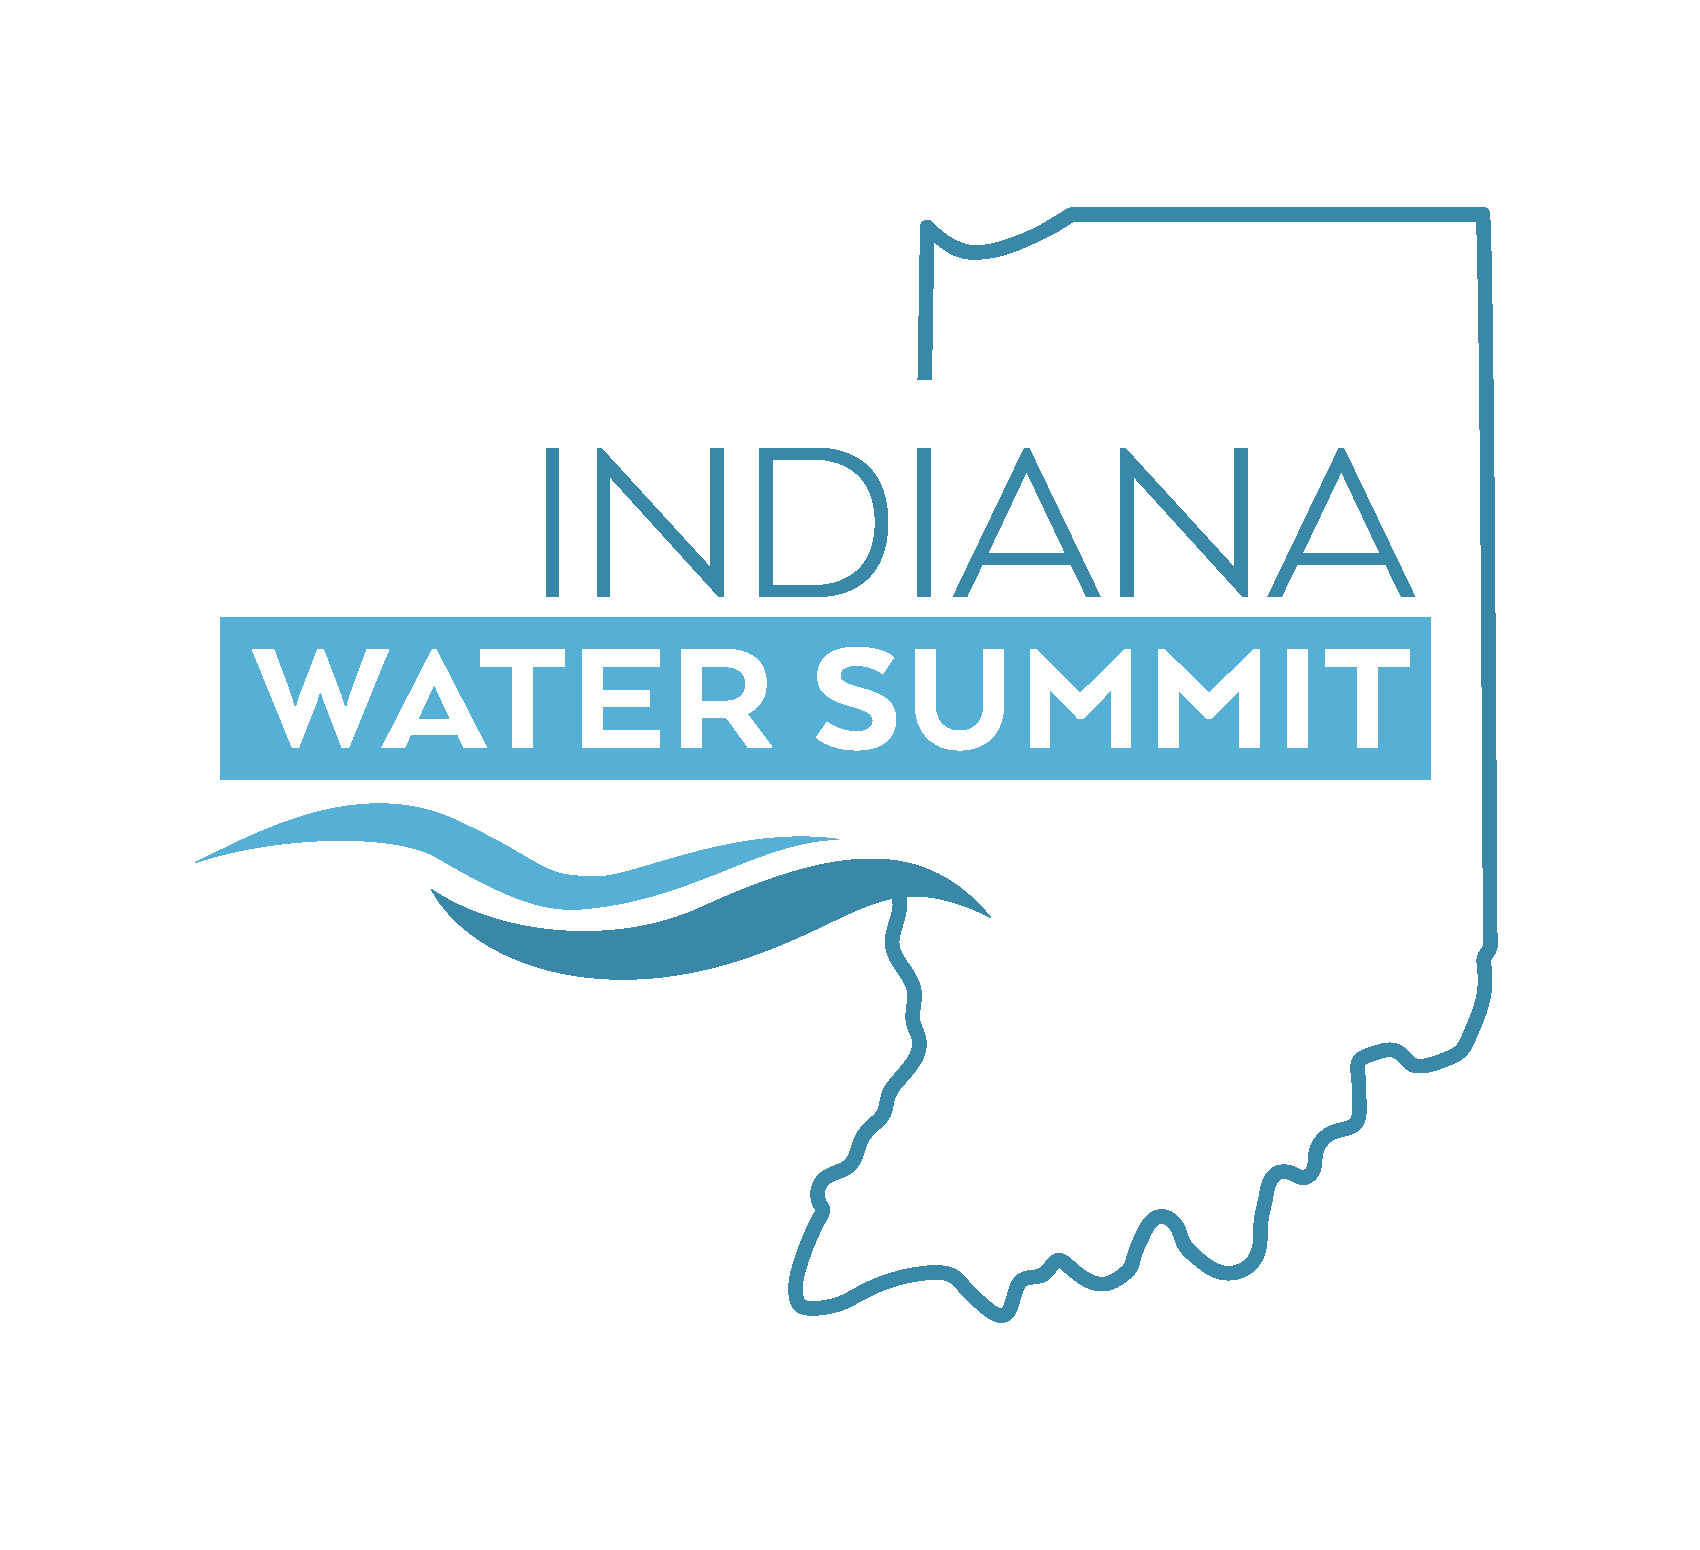 Indiana Water Roadmap | The White River Alliance ... on illinois map, indiana water map, southern indiana map, indiana castles, indiana street, indiana relief map, indiana time map, indiana map with exit numbers, indiana on us map, wabash indiana map, northern indiana map, united states map, indiana locality map, arcadia indiana map, hotels downtown indianapolis indiana map, indiana atlas, indiana sports map, centerville indiana map, indiana state map, indiana regions map,